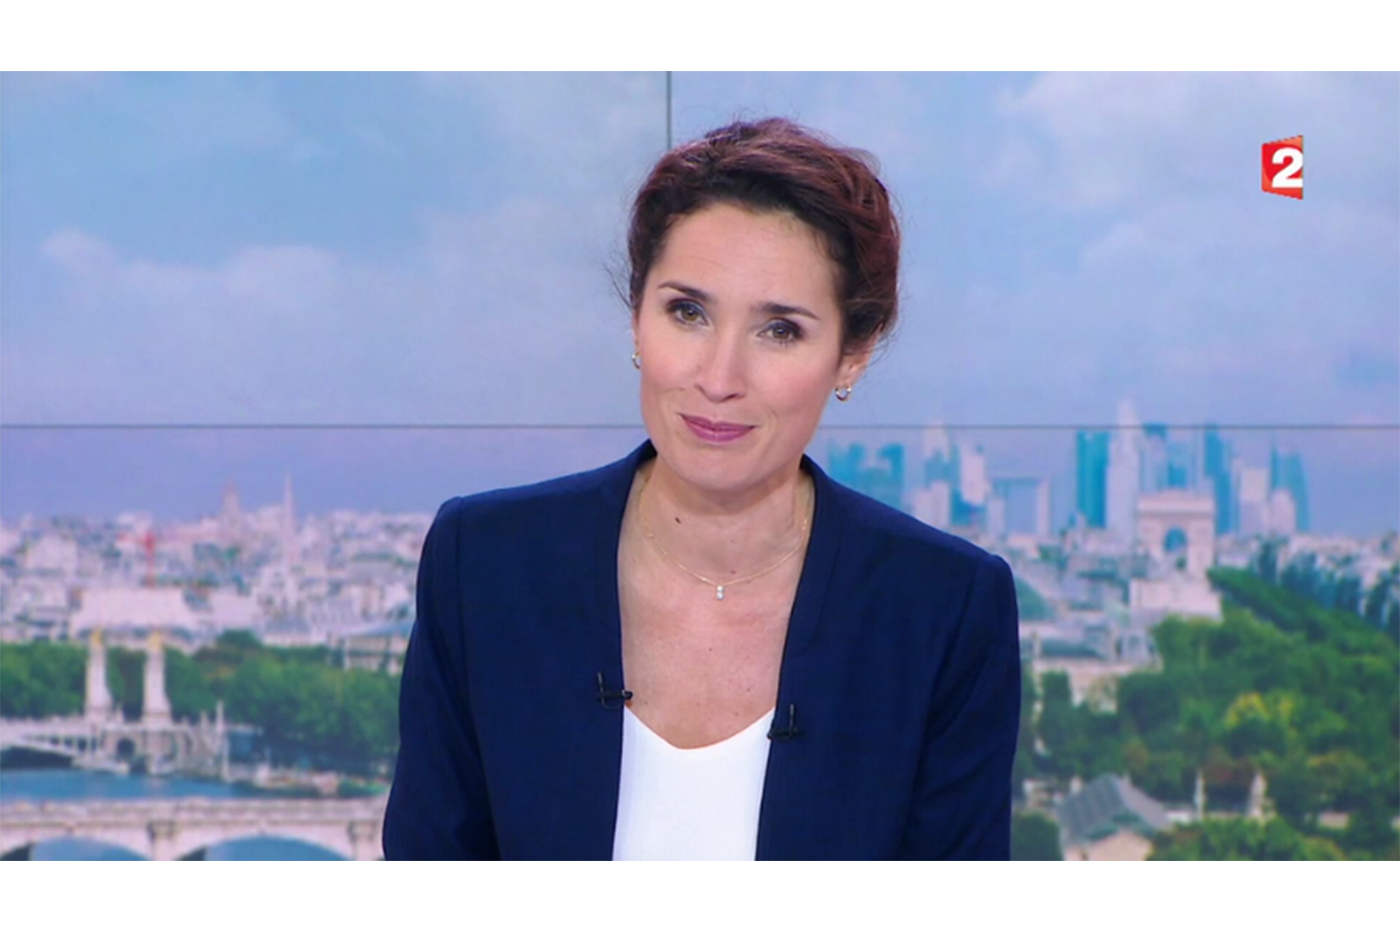 MARIE SOPHIE LACCARAU x COLLIER DUO 360° – Journal 13H00 – France 2